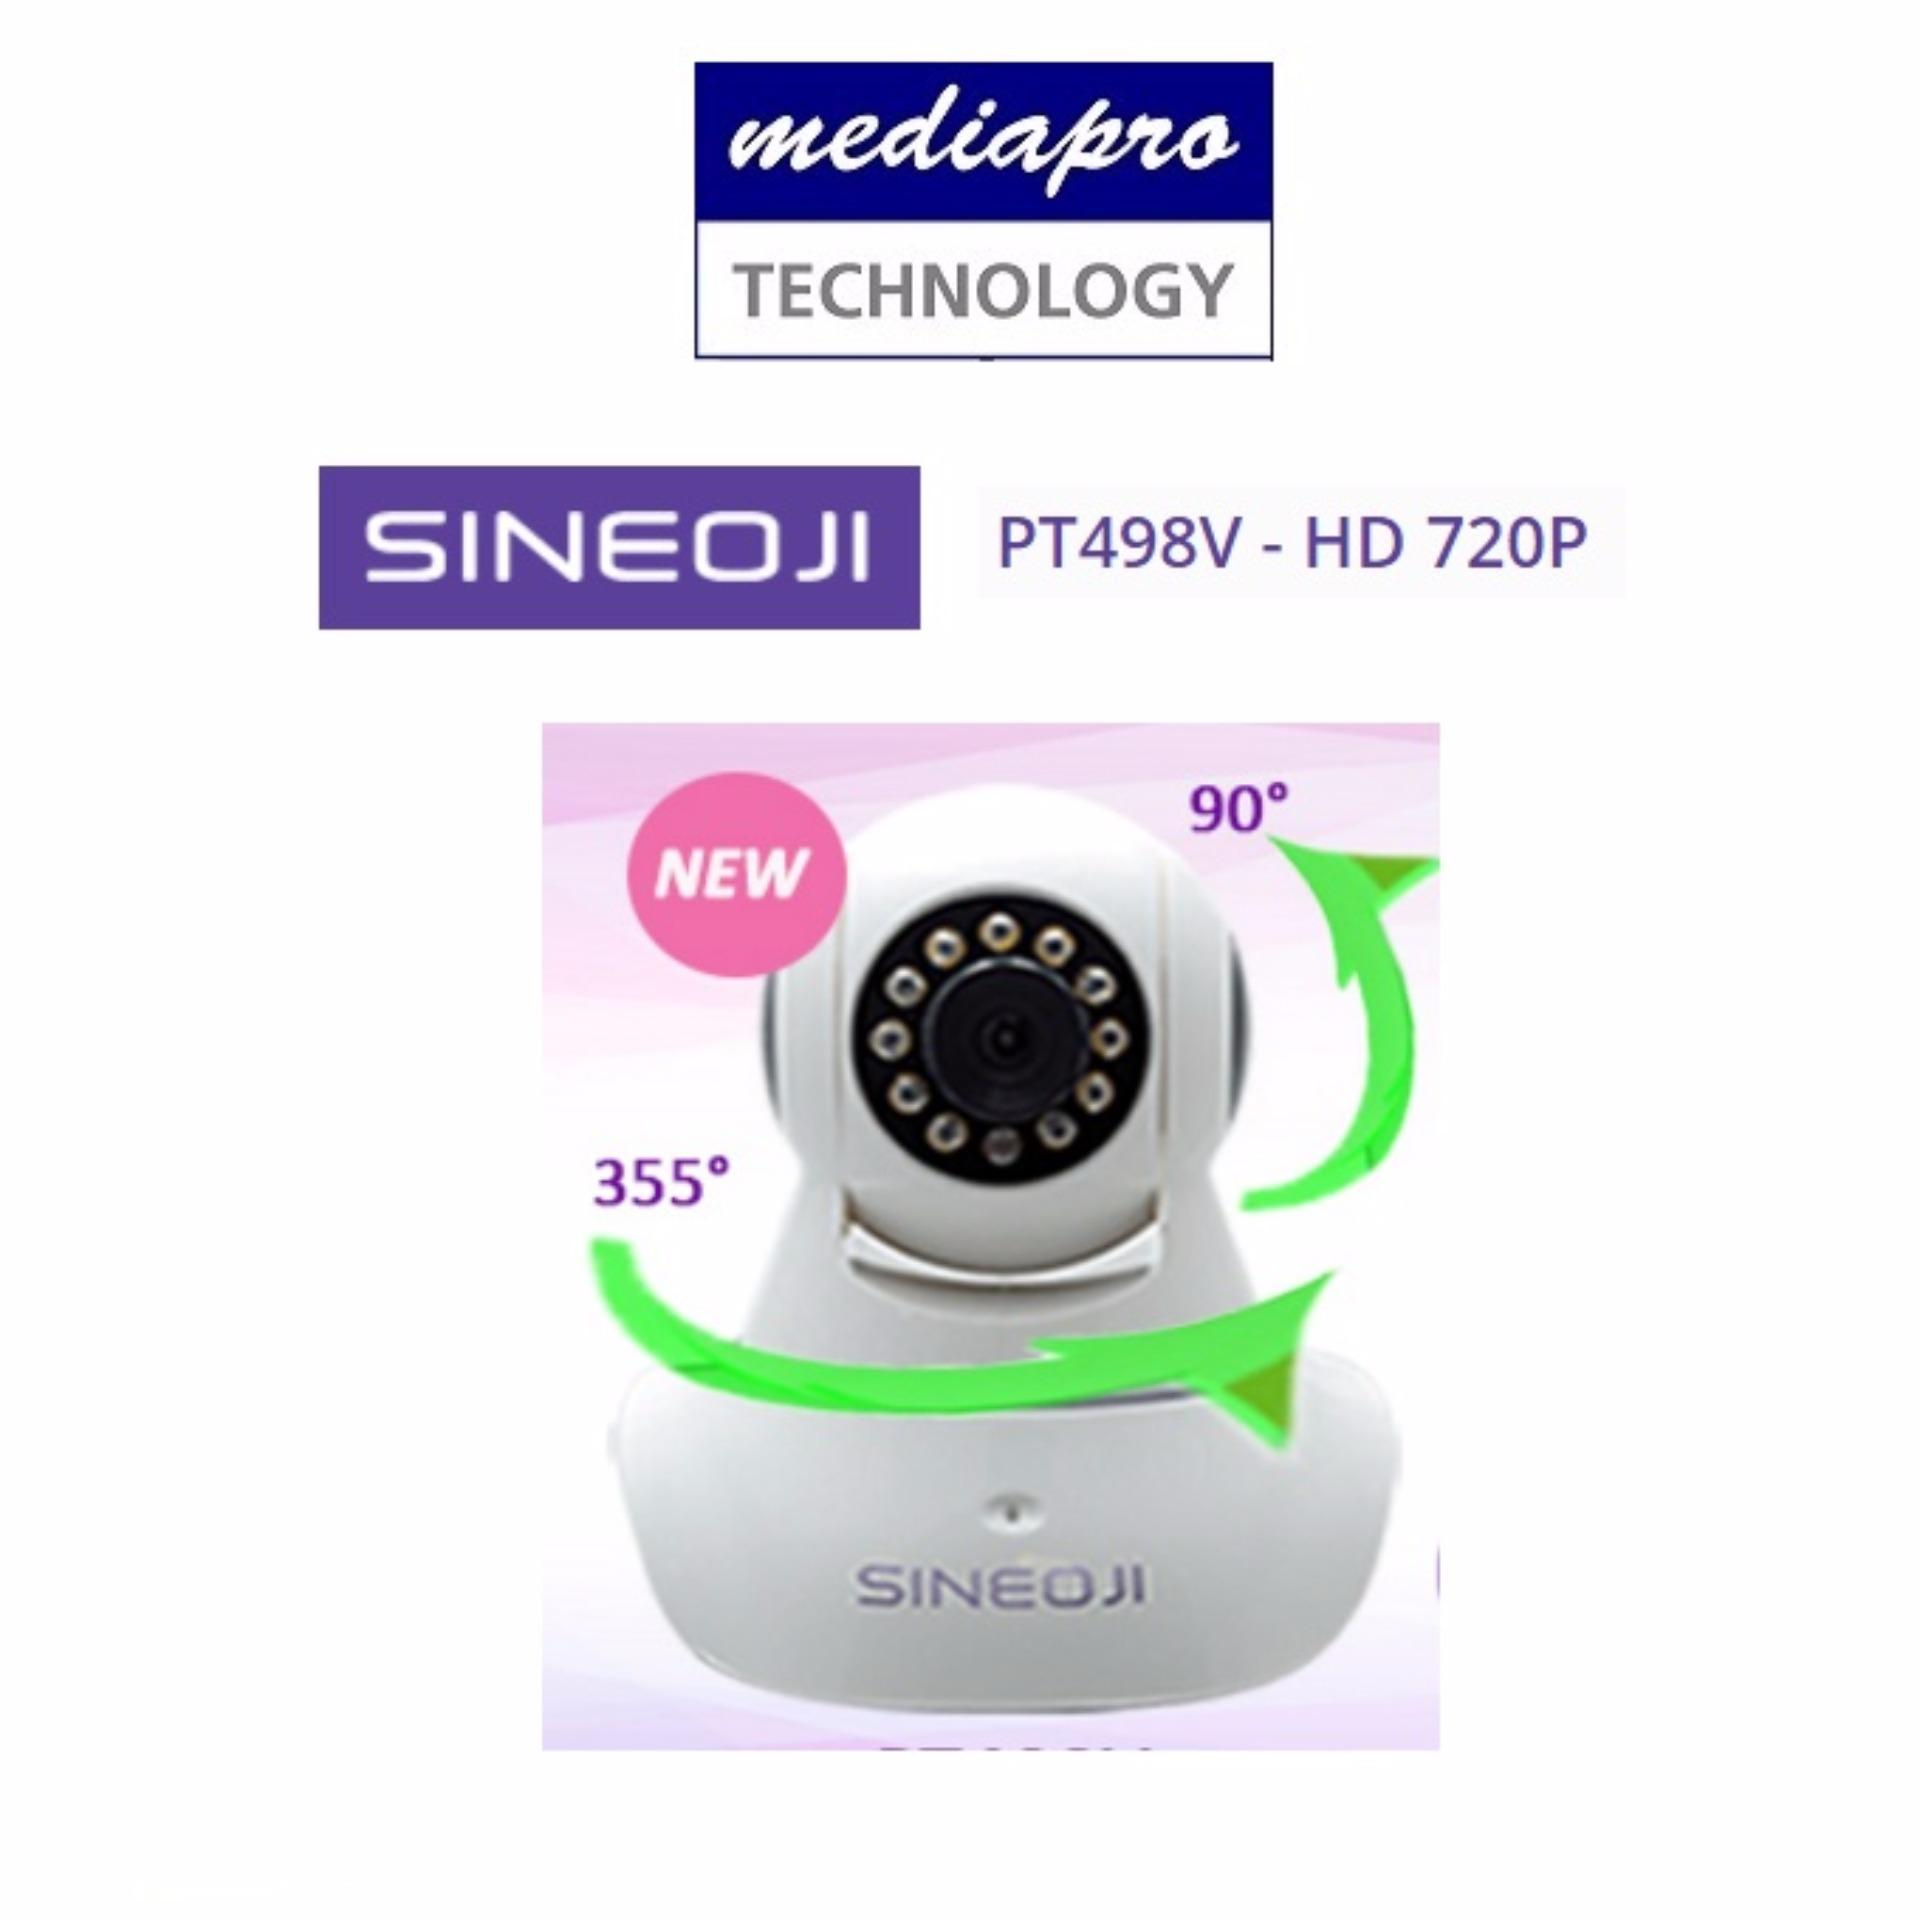 Sineoji PT498V - HD 720P HD Wireless Pan & Tilt IP Camera with SD Card Slot